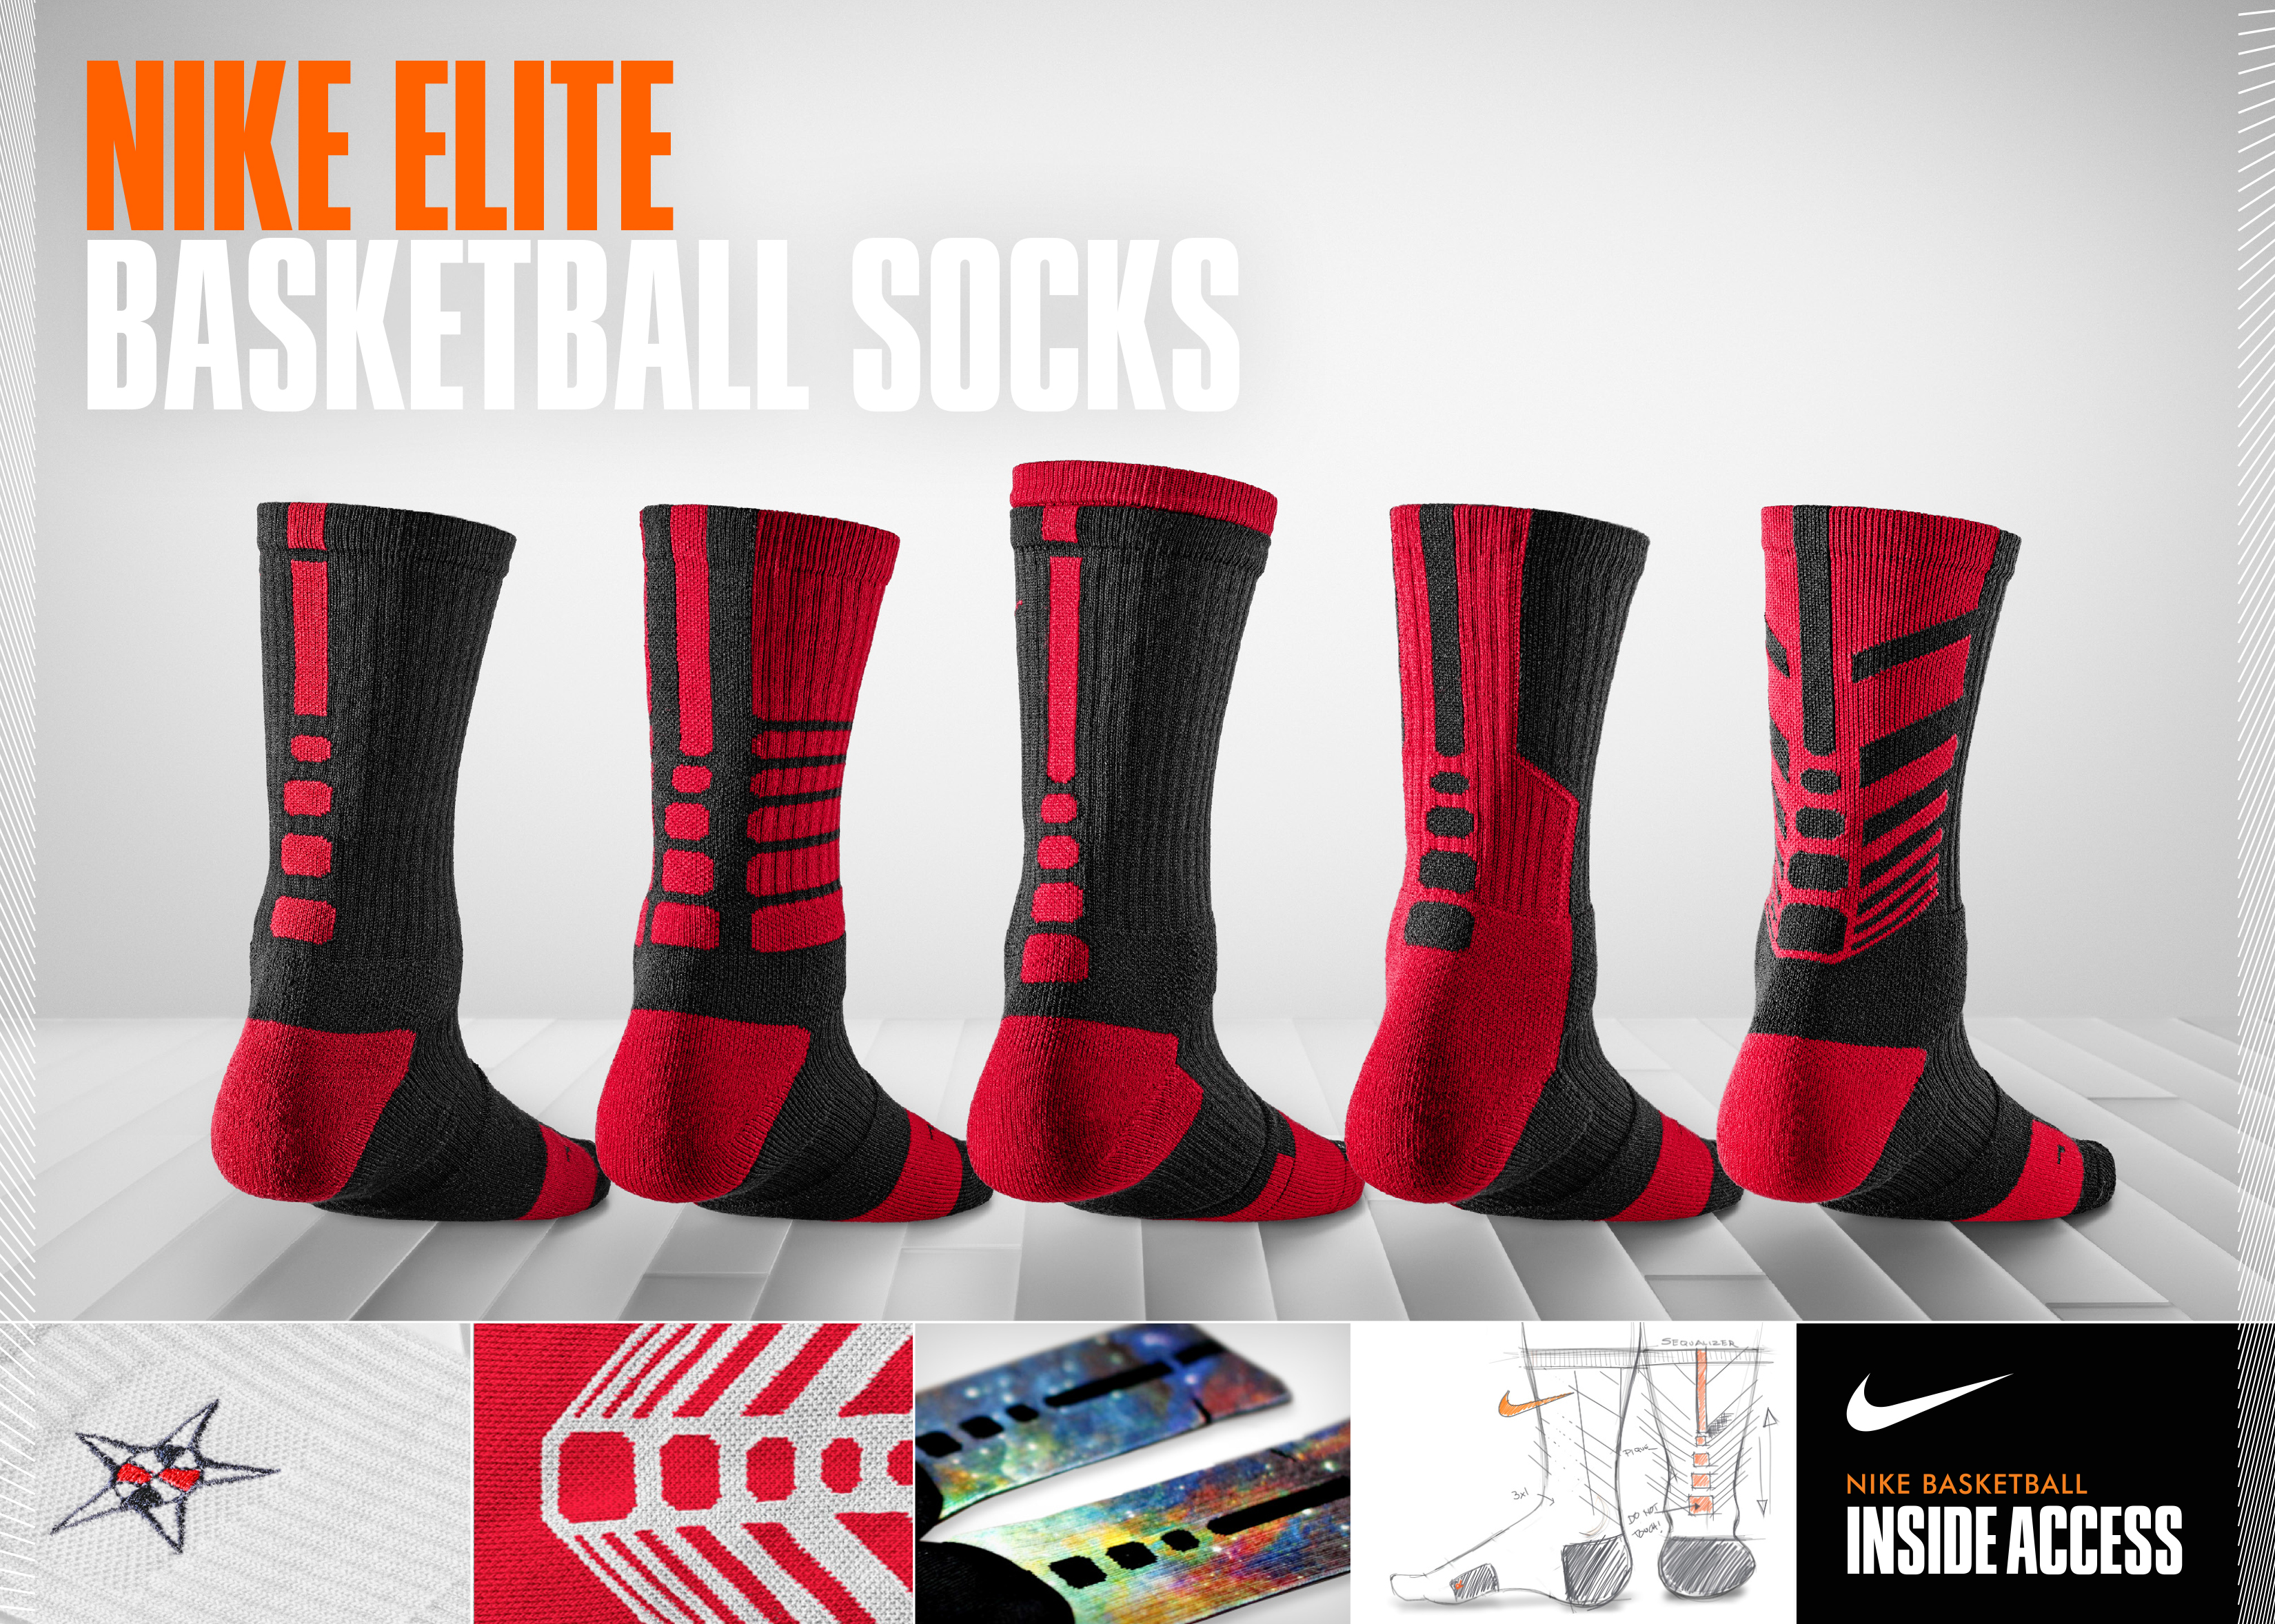 inside access behind the rise of the nike elite